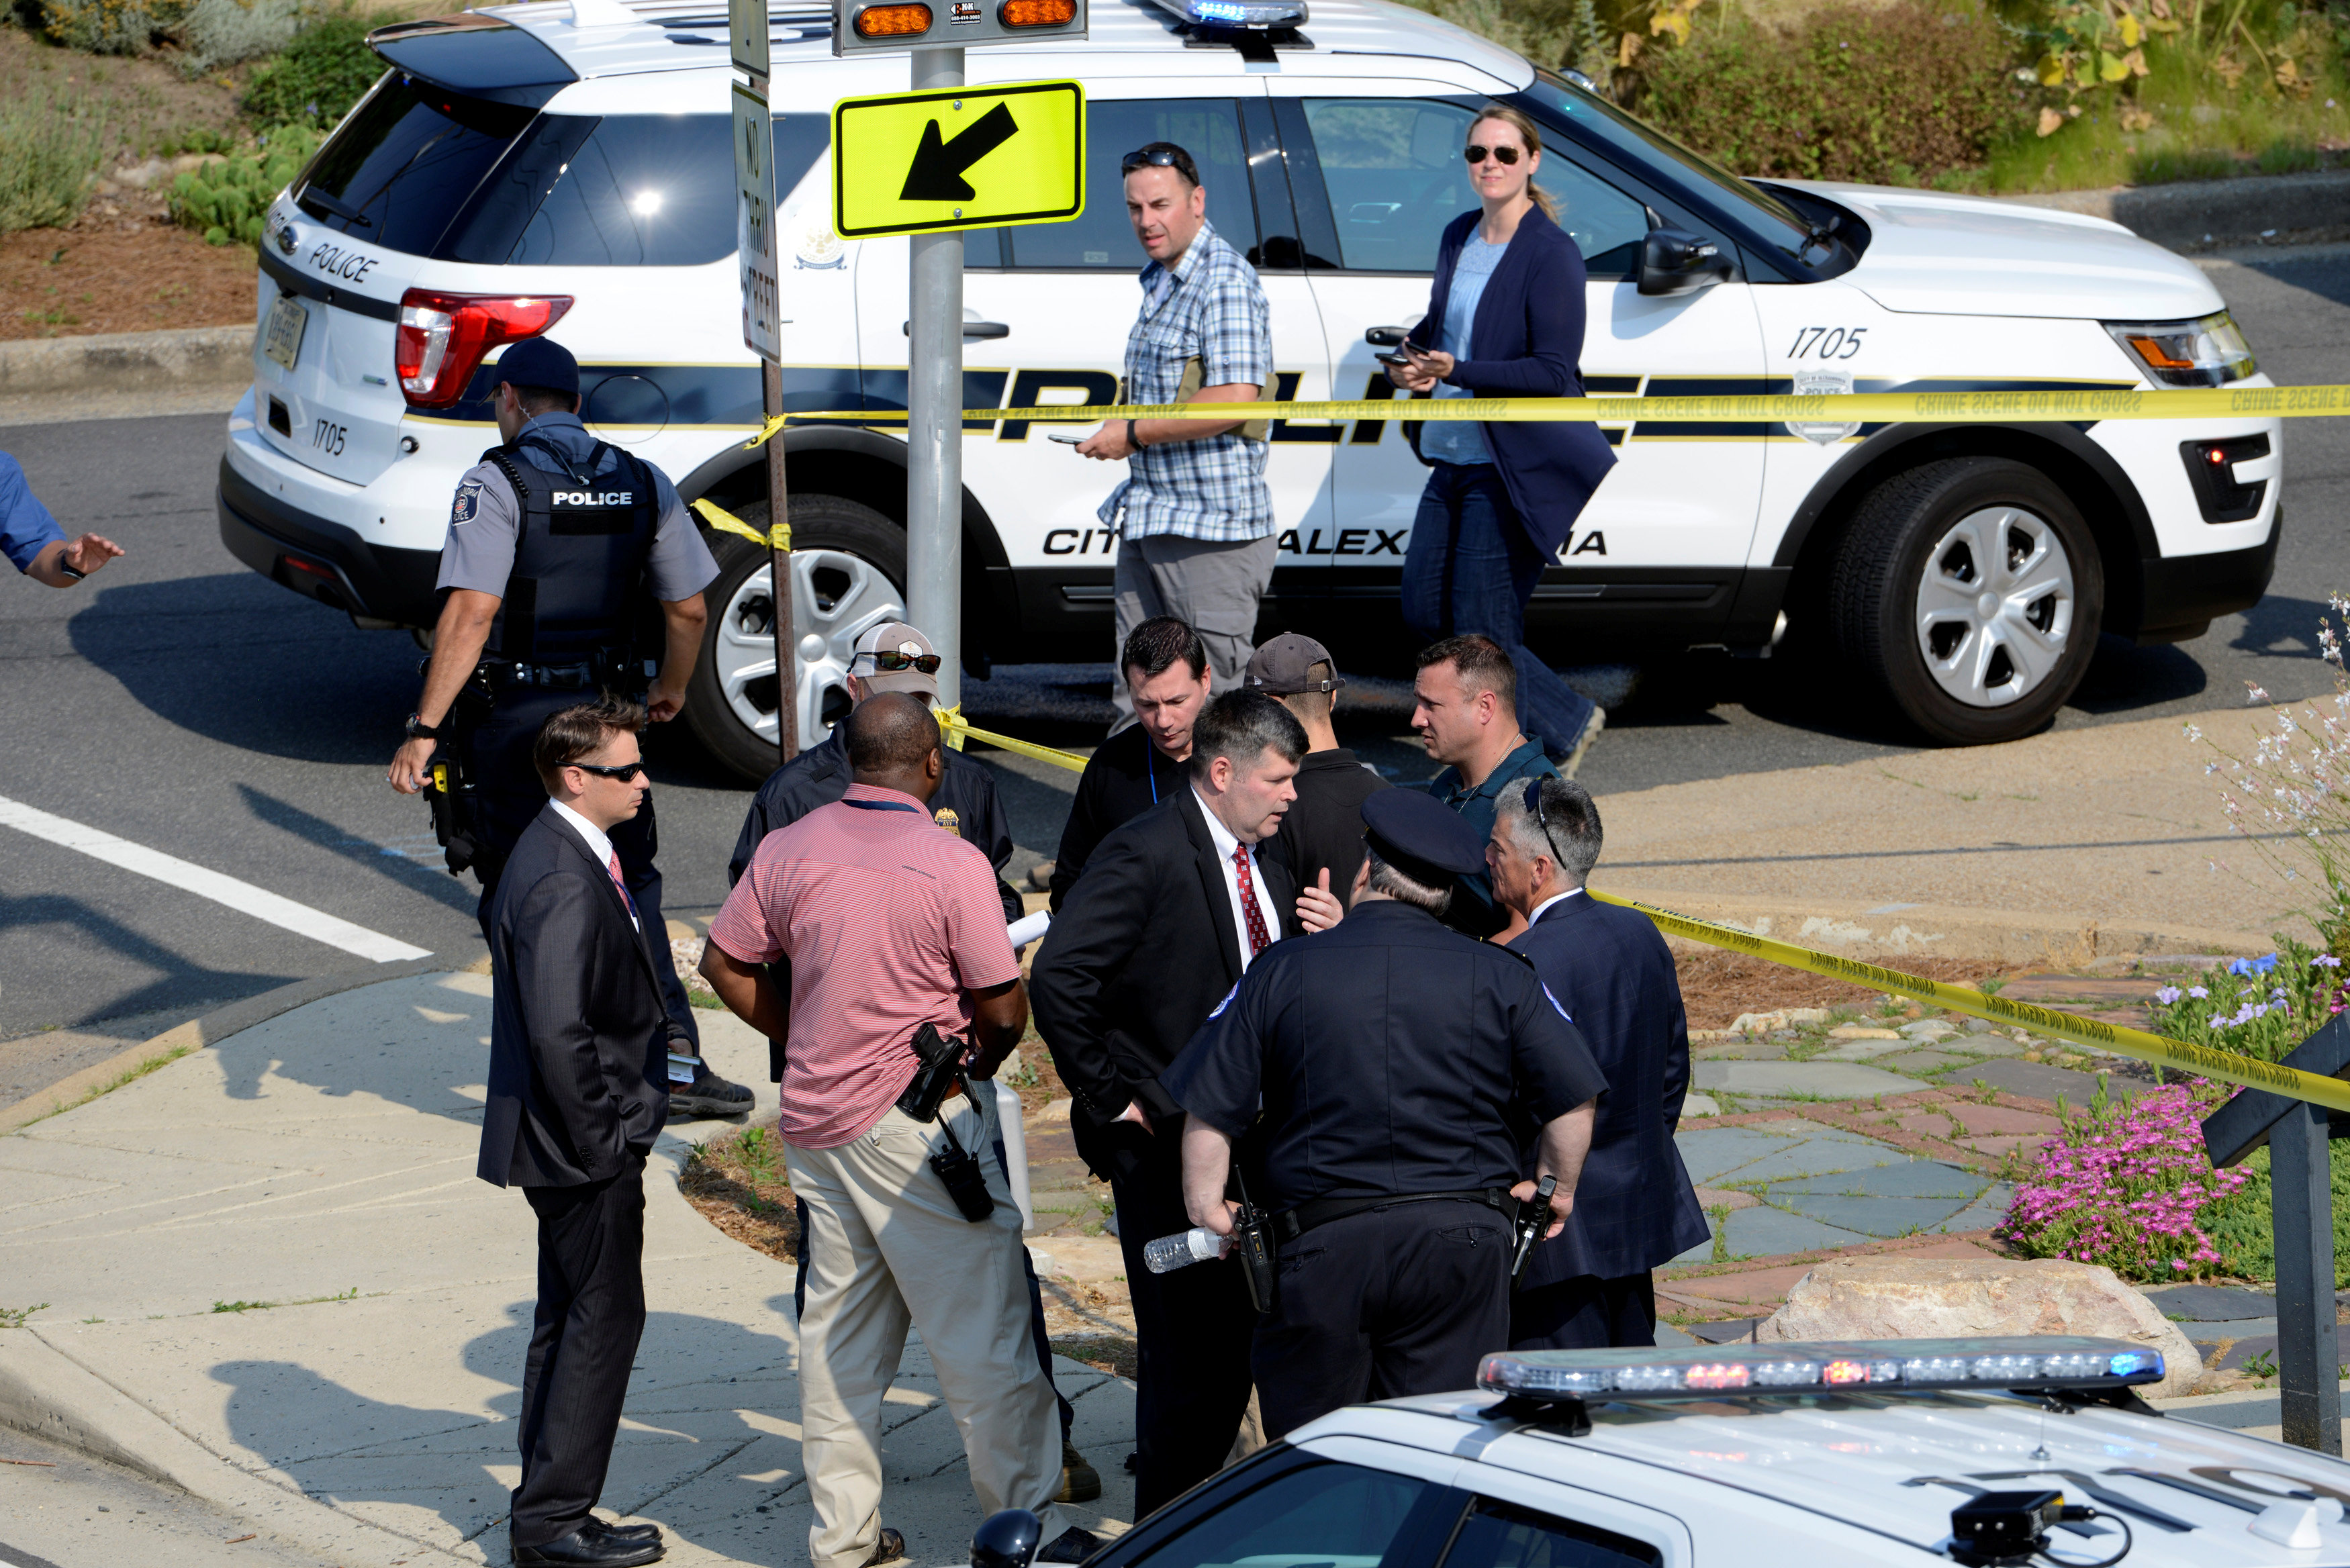 Police and investigators gather at an intersection near the scene where shots were fired during a congressional baseball practice, wounding House Majority Whip Steve Scalise (R-LA), in Alexandria, Virginia on June 14, 2017. (REUTERS/Mike Theiler)